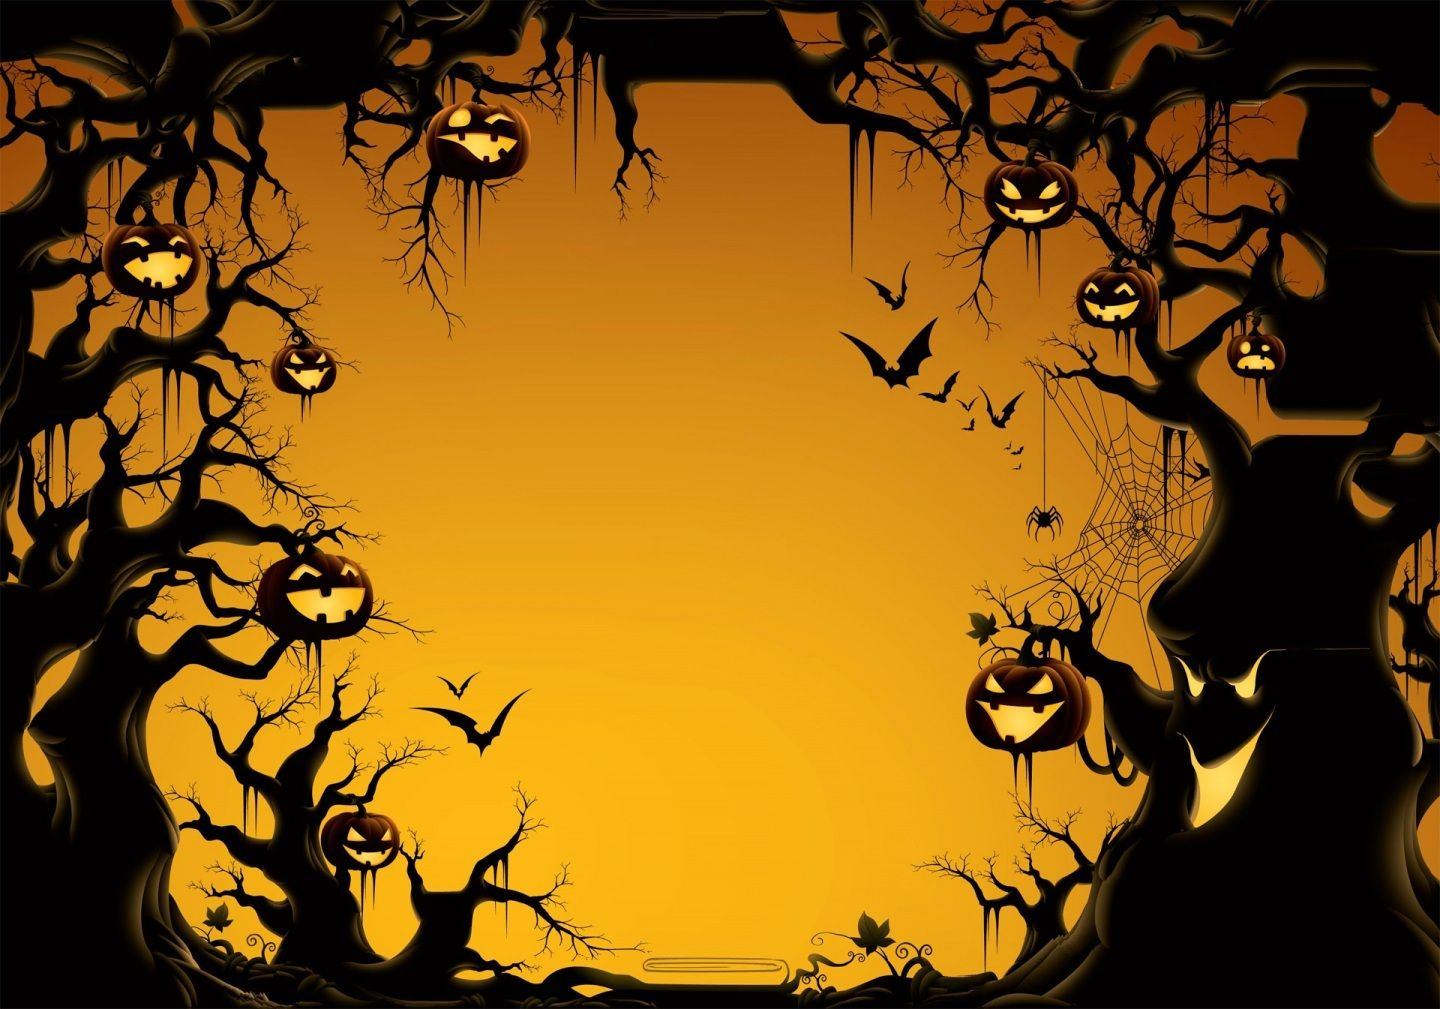 Free Printable Halloween Invitations Templates Halloween Poster Halloween Invitations Halloween Backgrounds